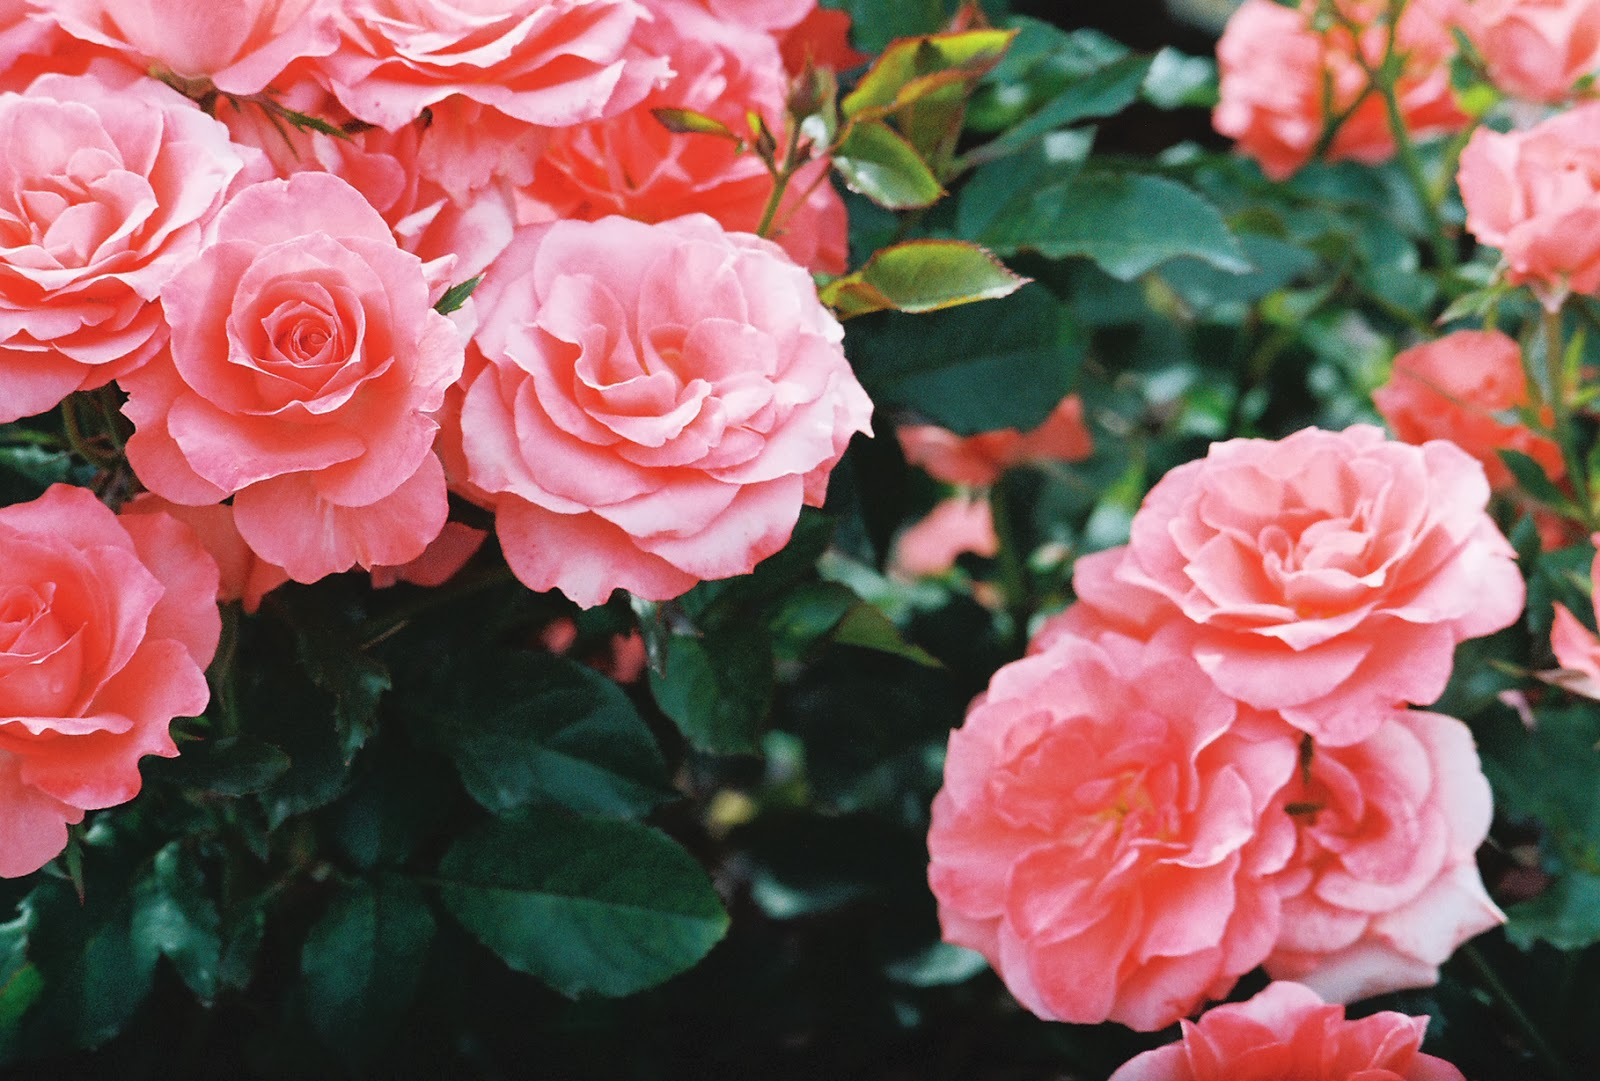 coming  roses expert rose advice  witherspoon rose